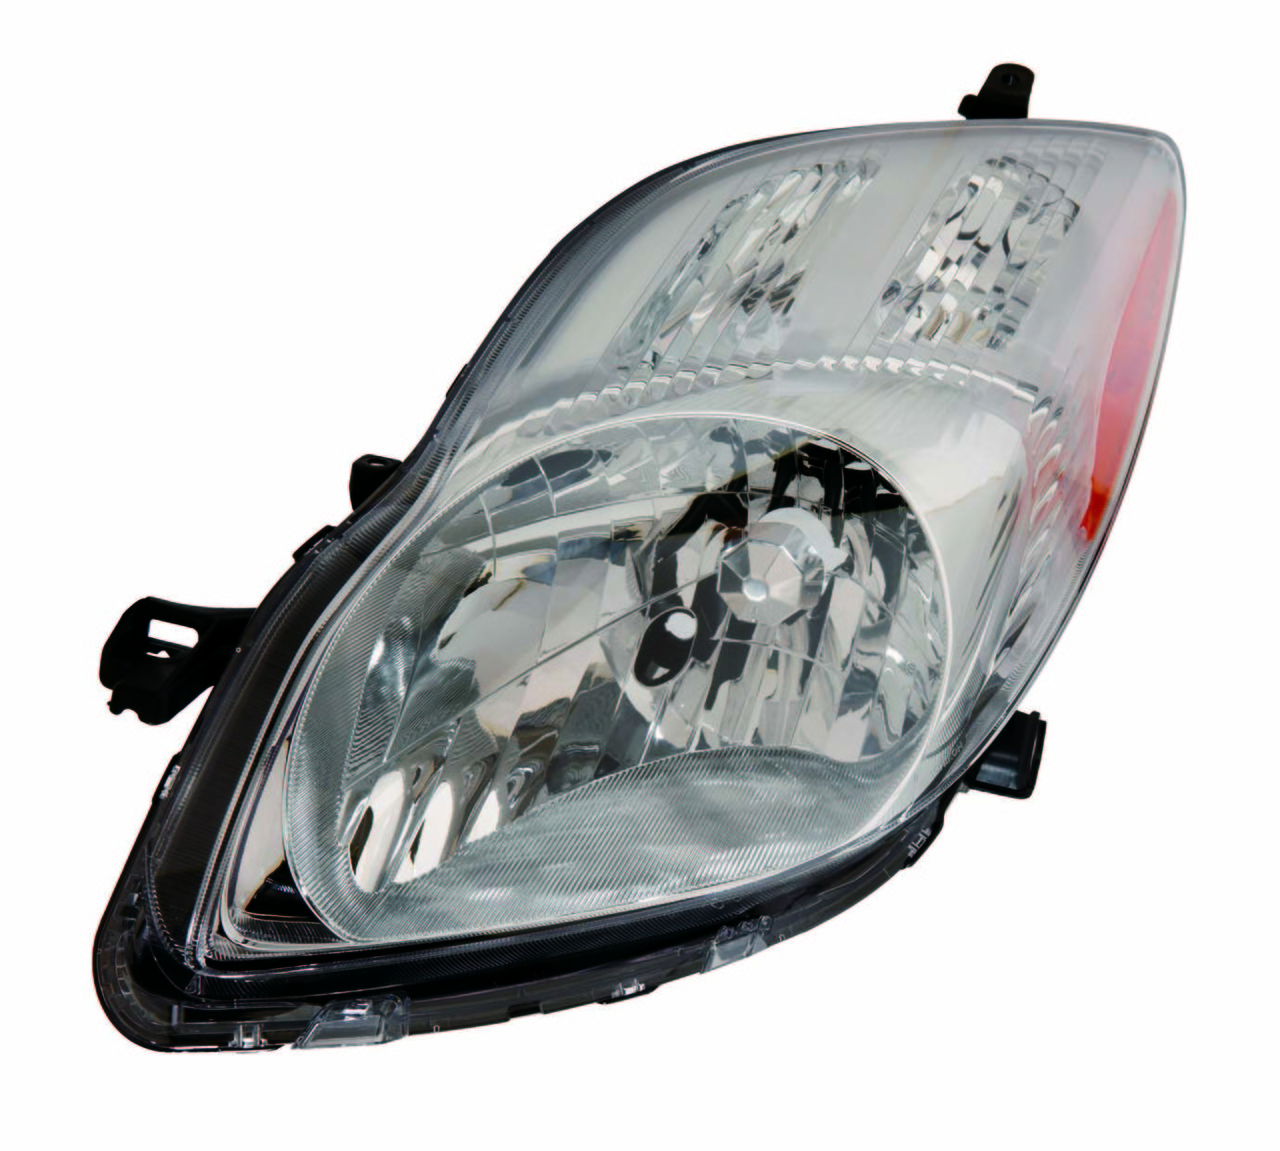 Toyota Yaris hatchback 2009 2010 2011 left driver headlight